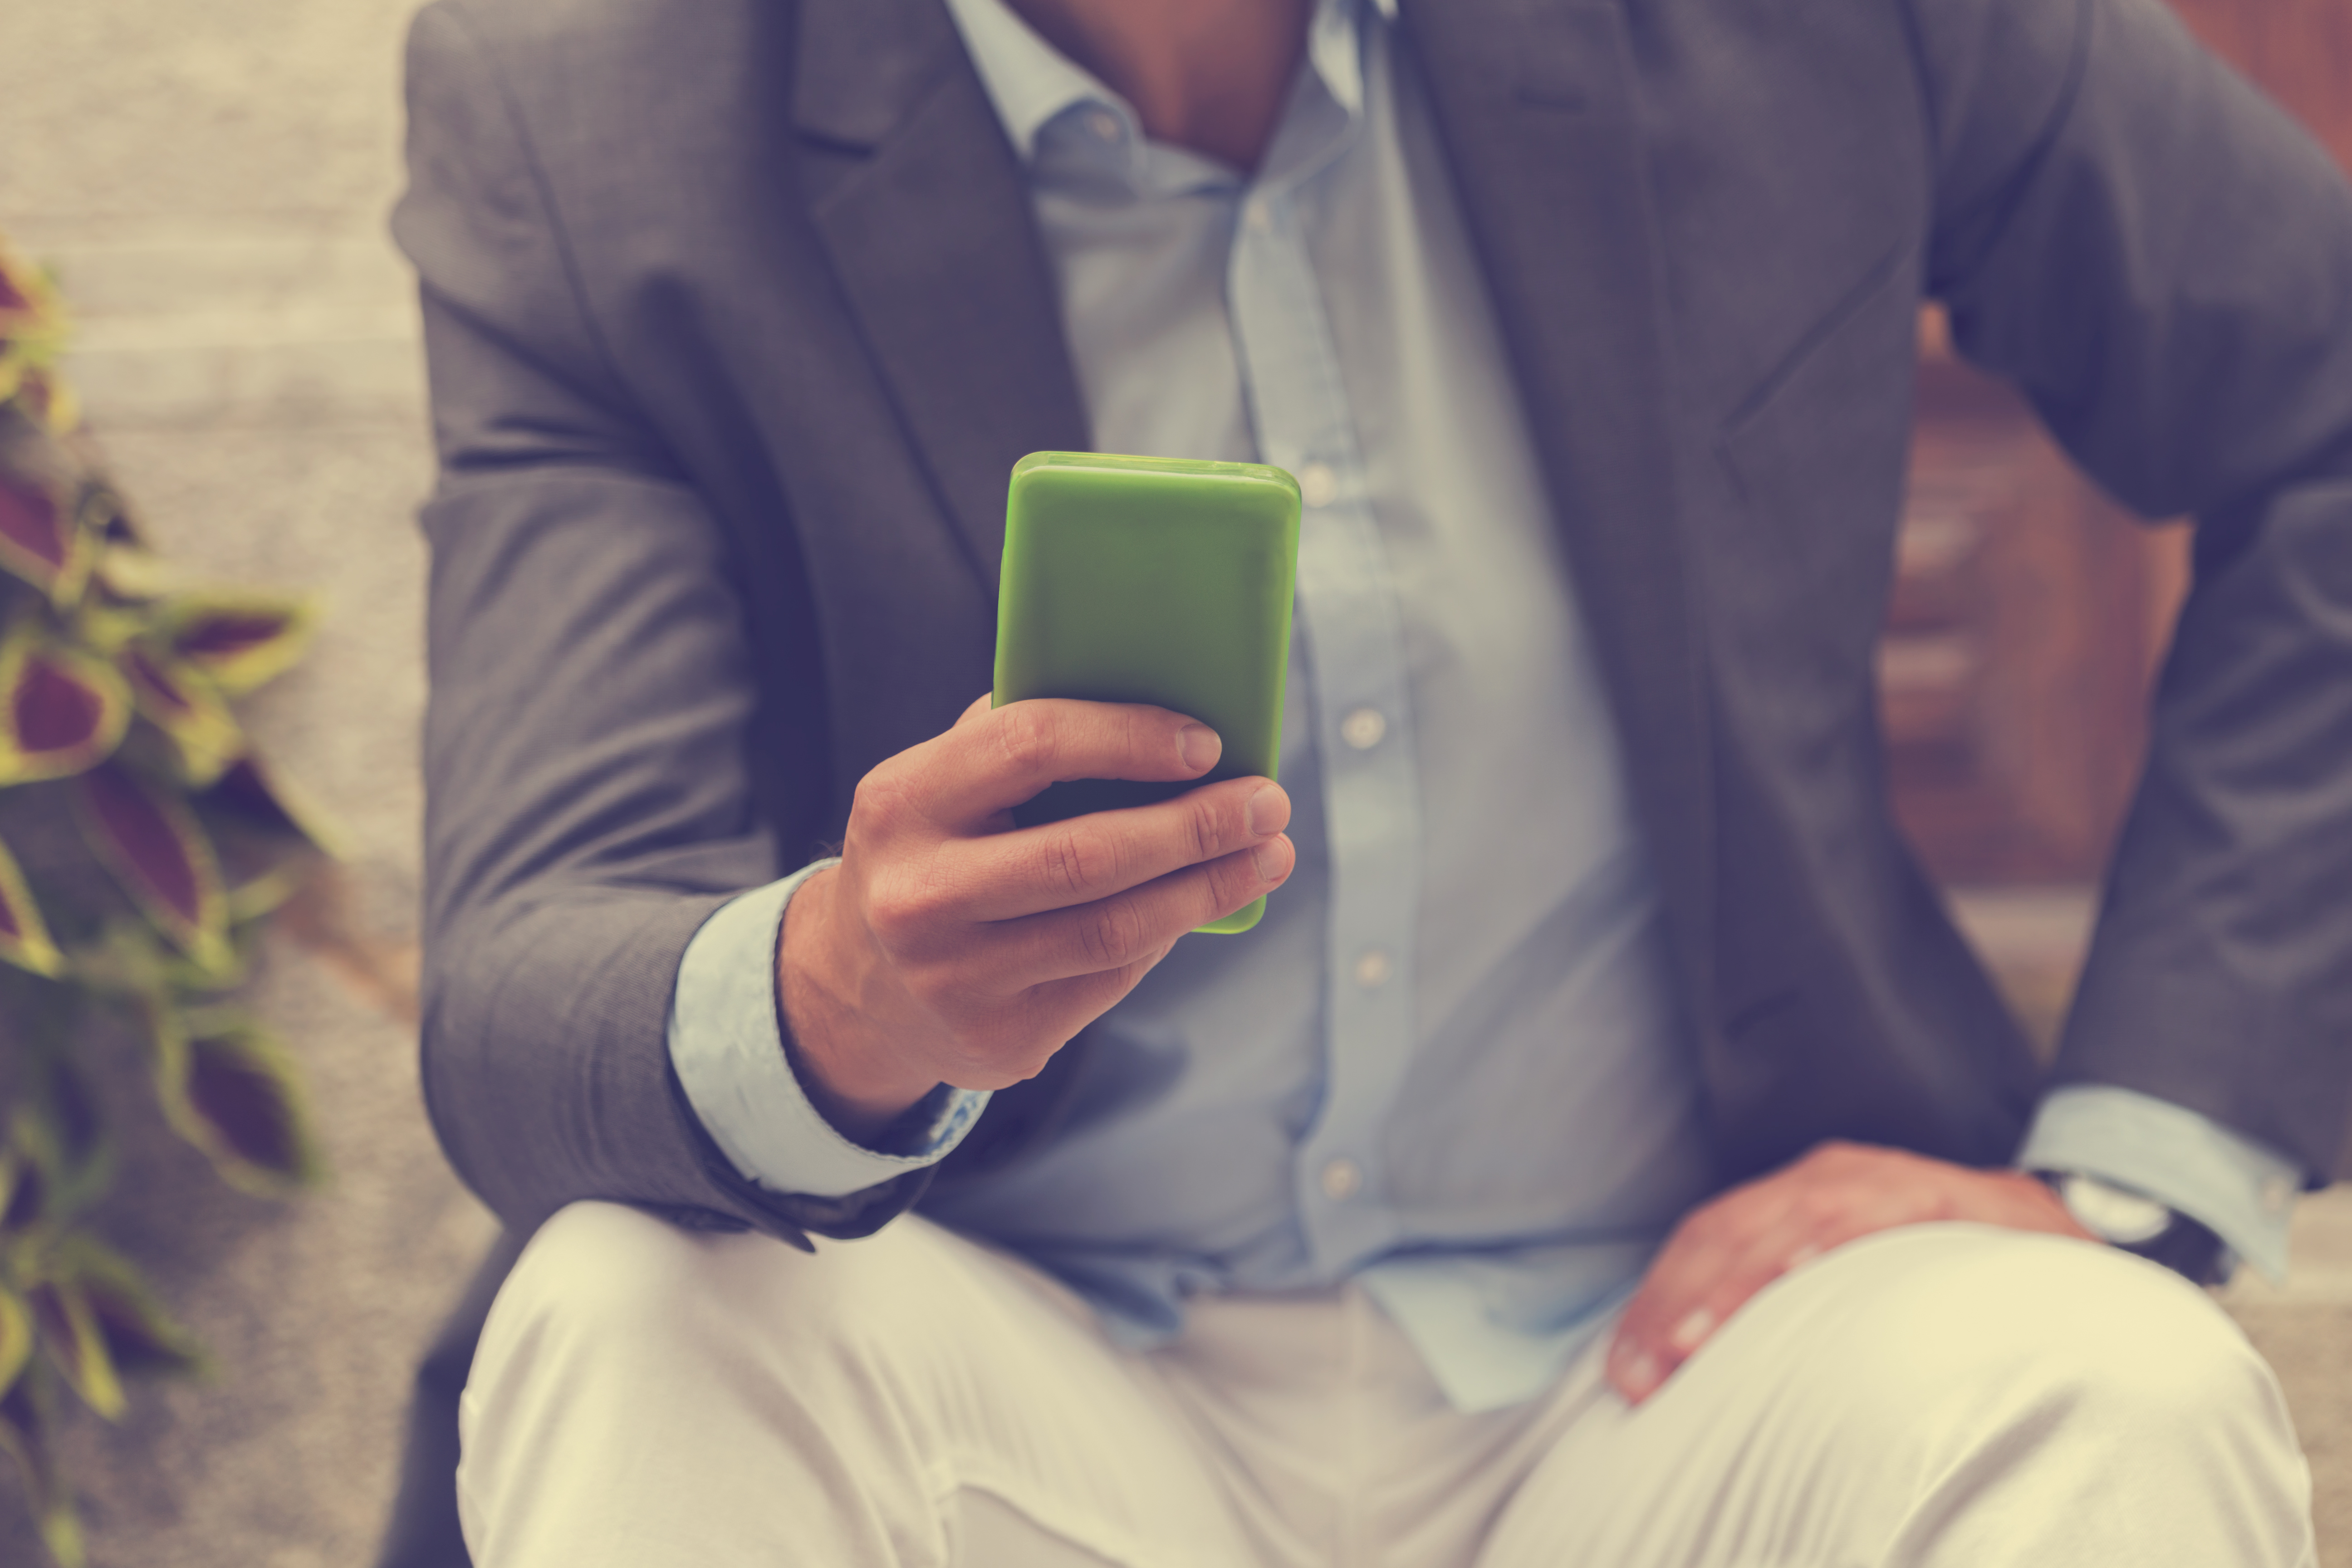 Handsome man using smartphone.